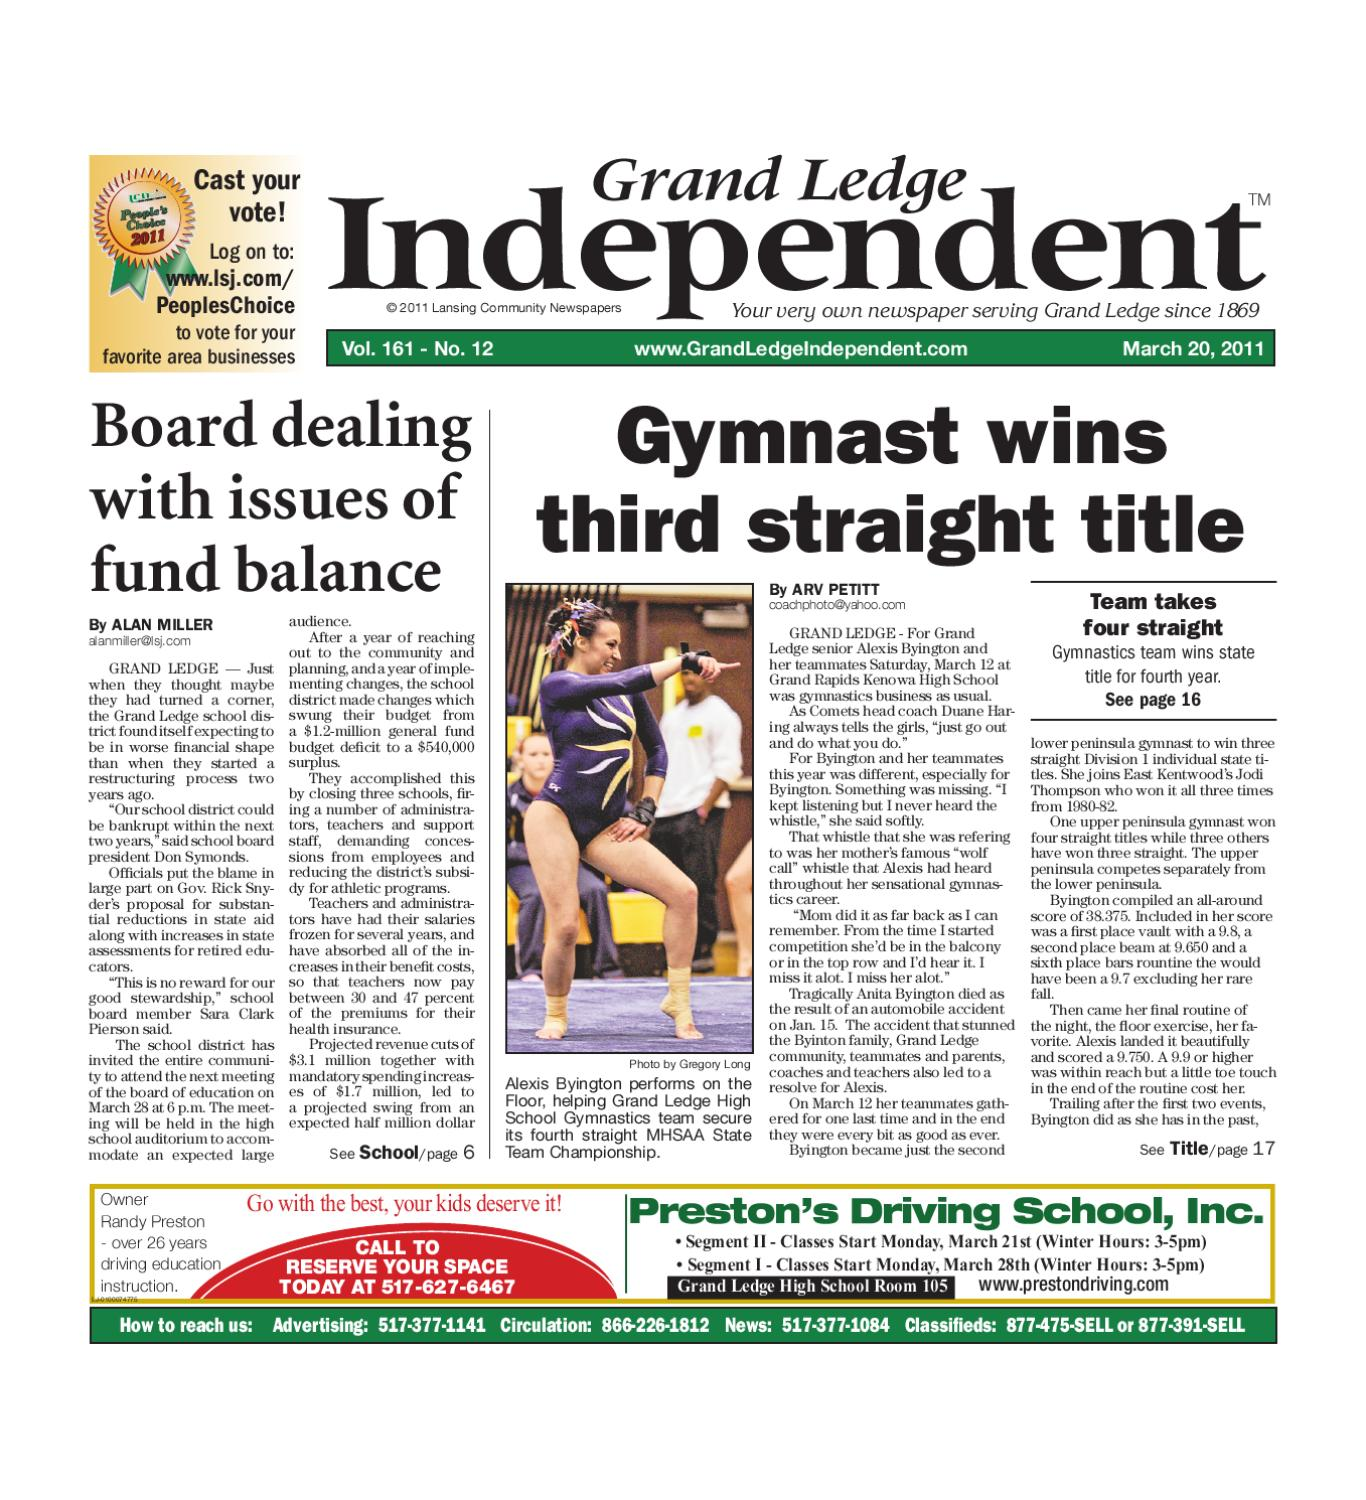 Grand Ledge Independent by Lansing State Journal - issuu 2095a46ebe869